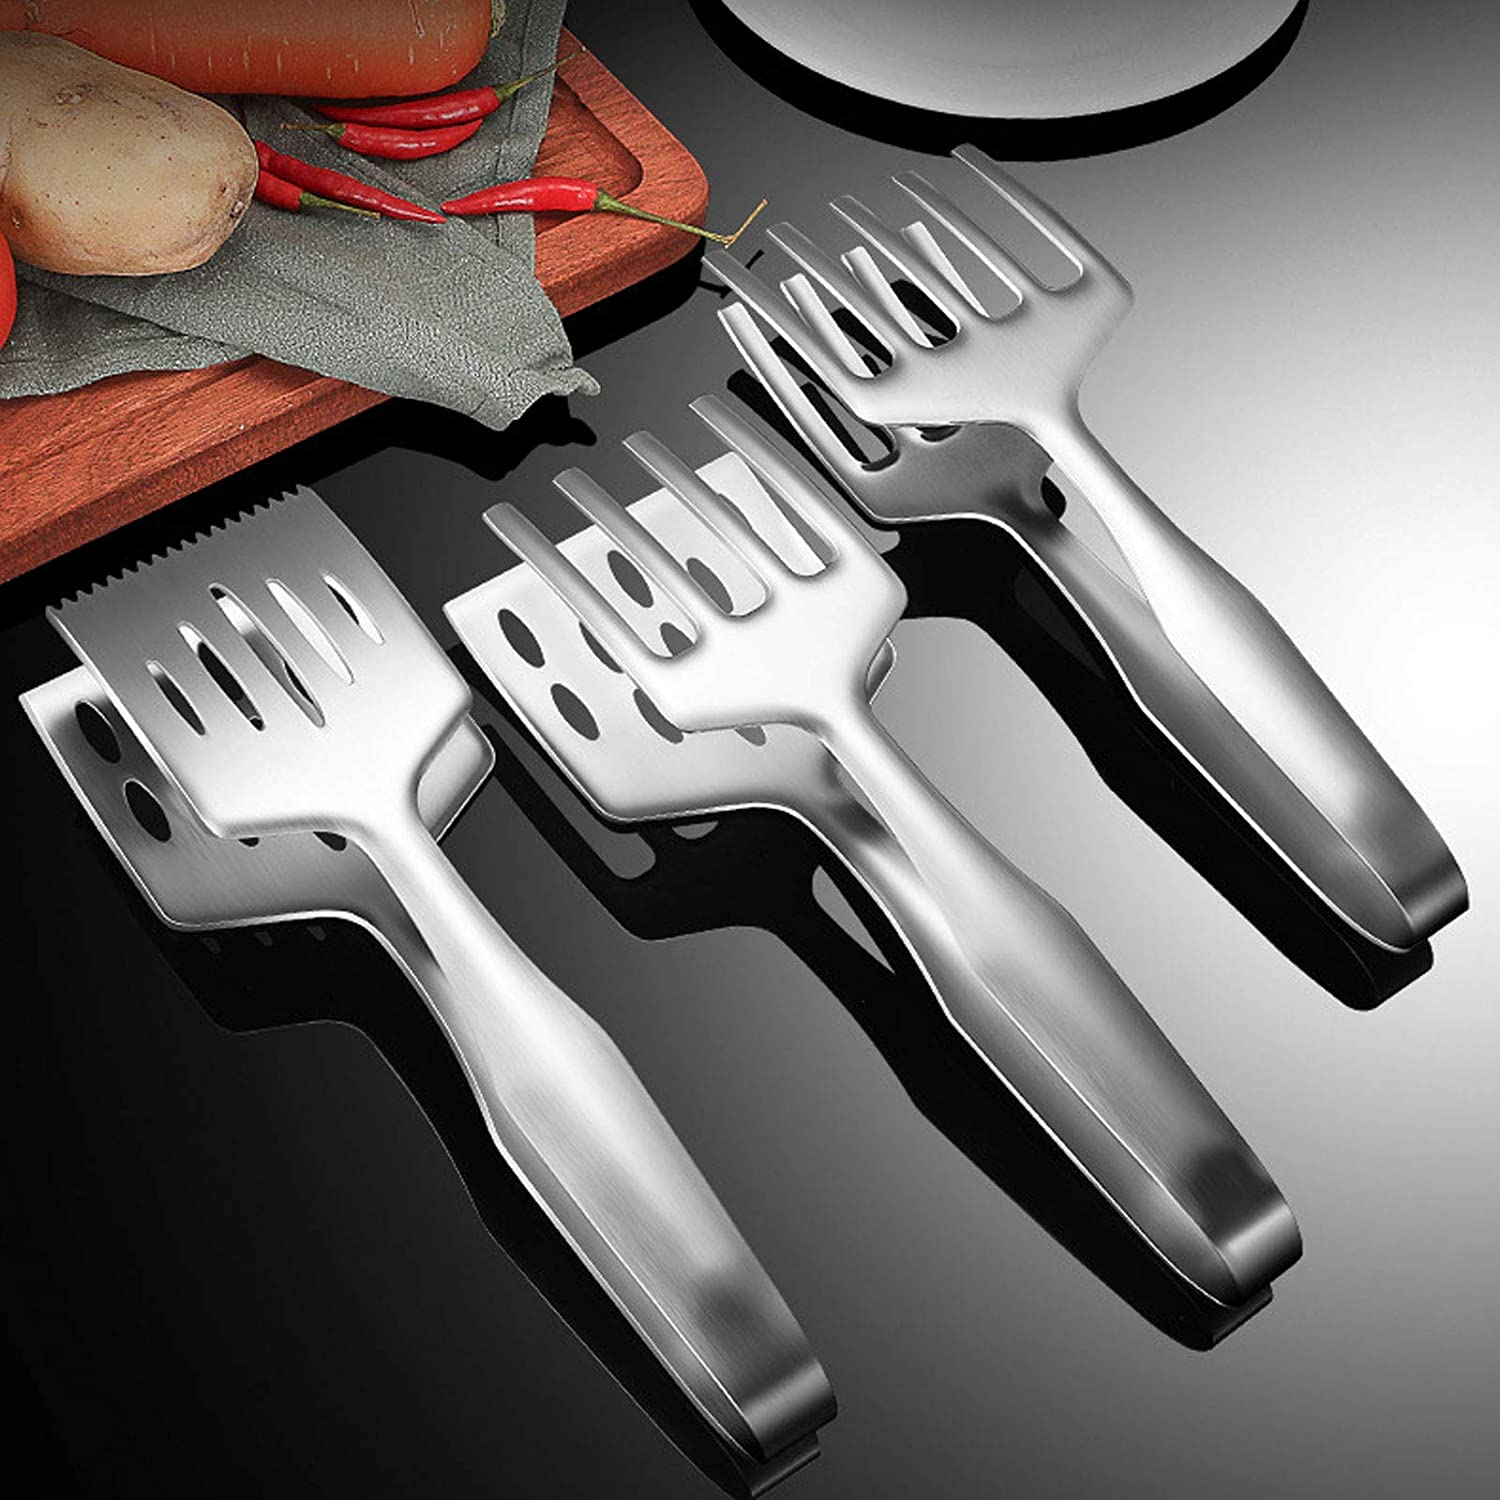 HOUJIA Kitchen Max 59% OFF Tongs 2 Clamp Stainles Steak Ranking TOP10 Pieces